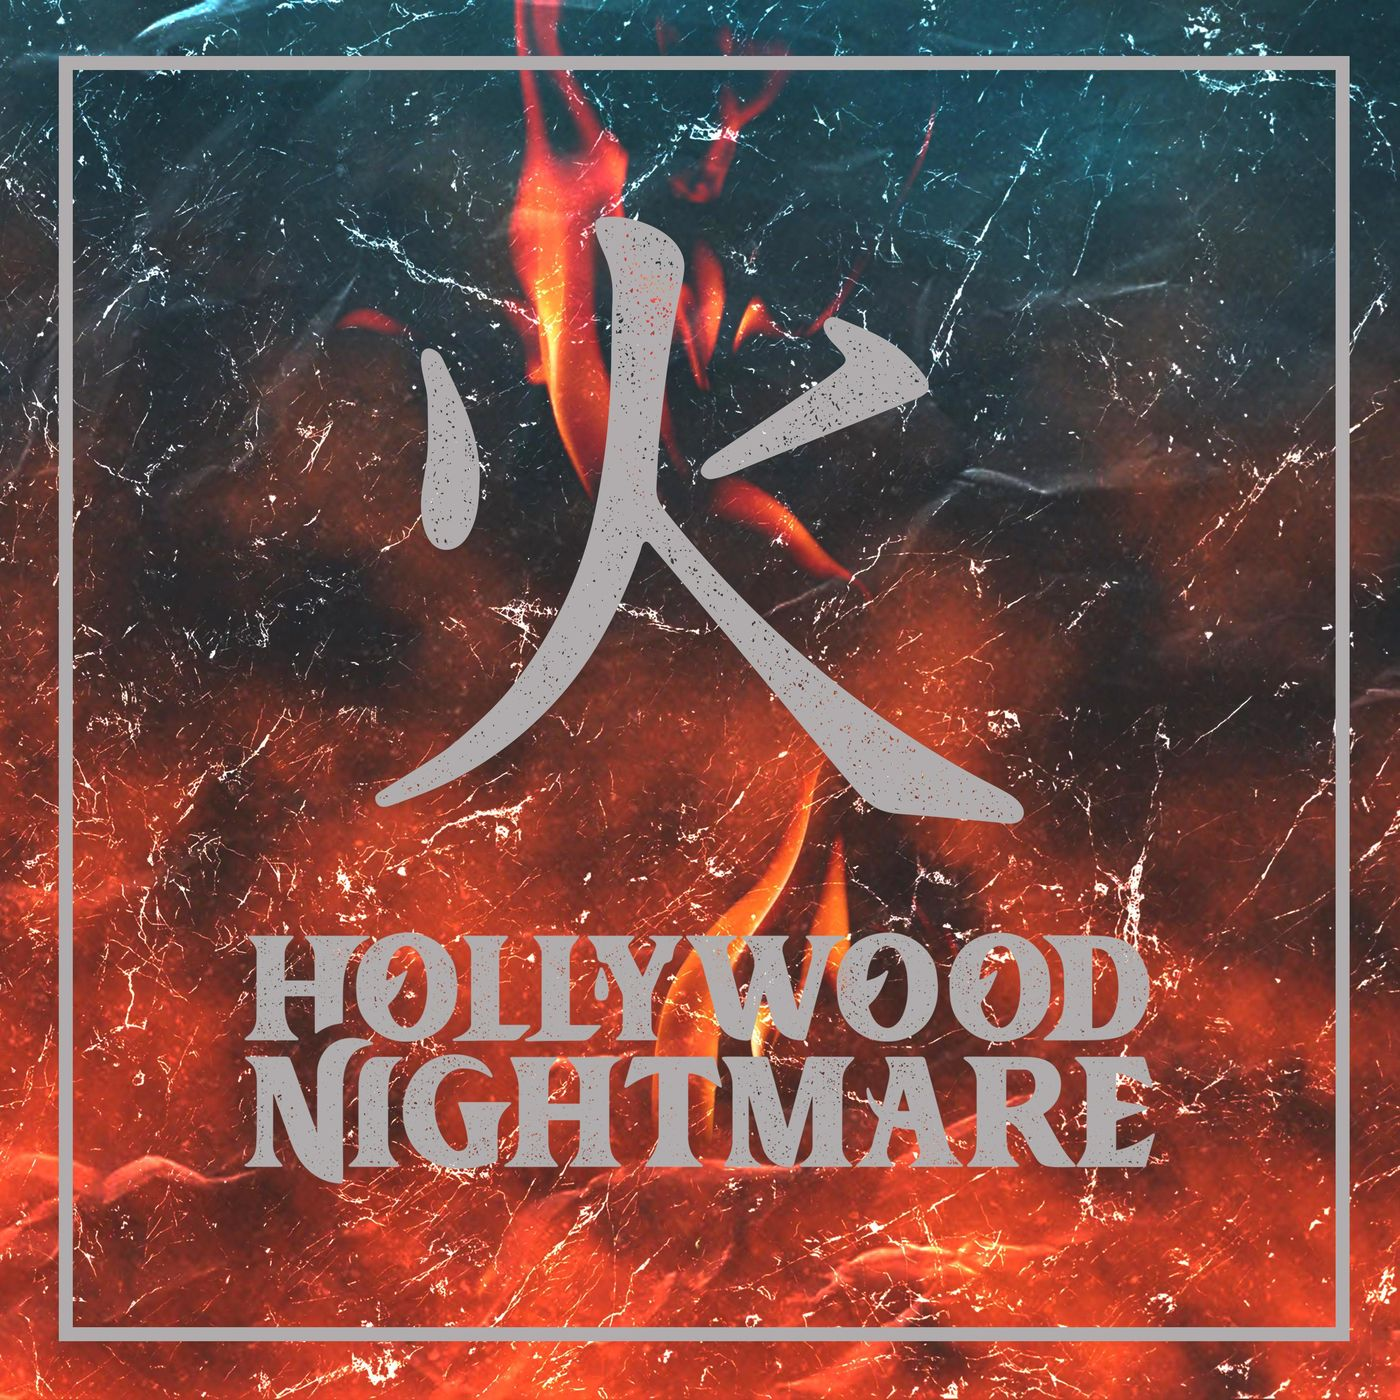 Hollywood Nightmare - Fire [single] (2019)